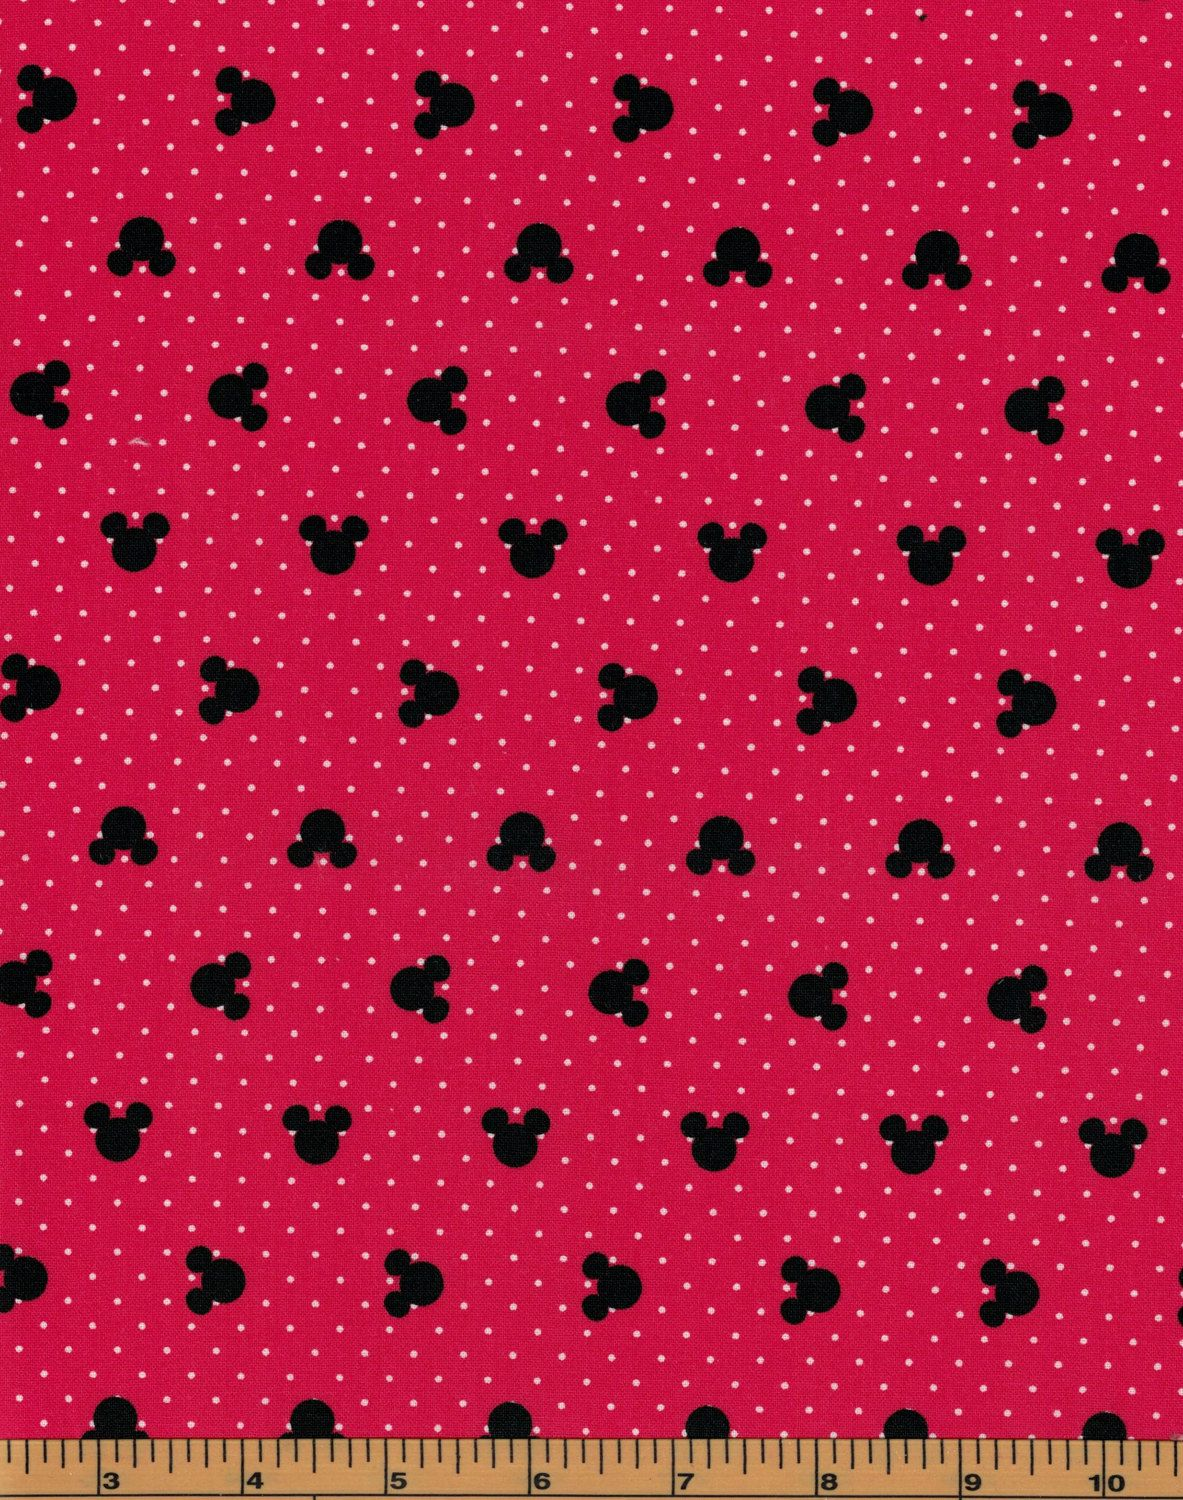 8a8bc89b9b0 Mickey Mouse Heads on a Red Background- Camelot Fabrics- 100% Cotton Fabric  by QuiltsOnTheFly on Etsy